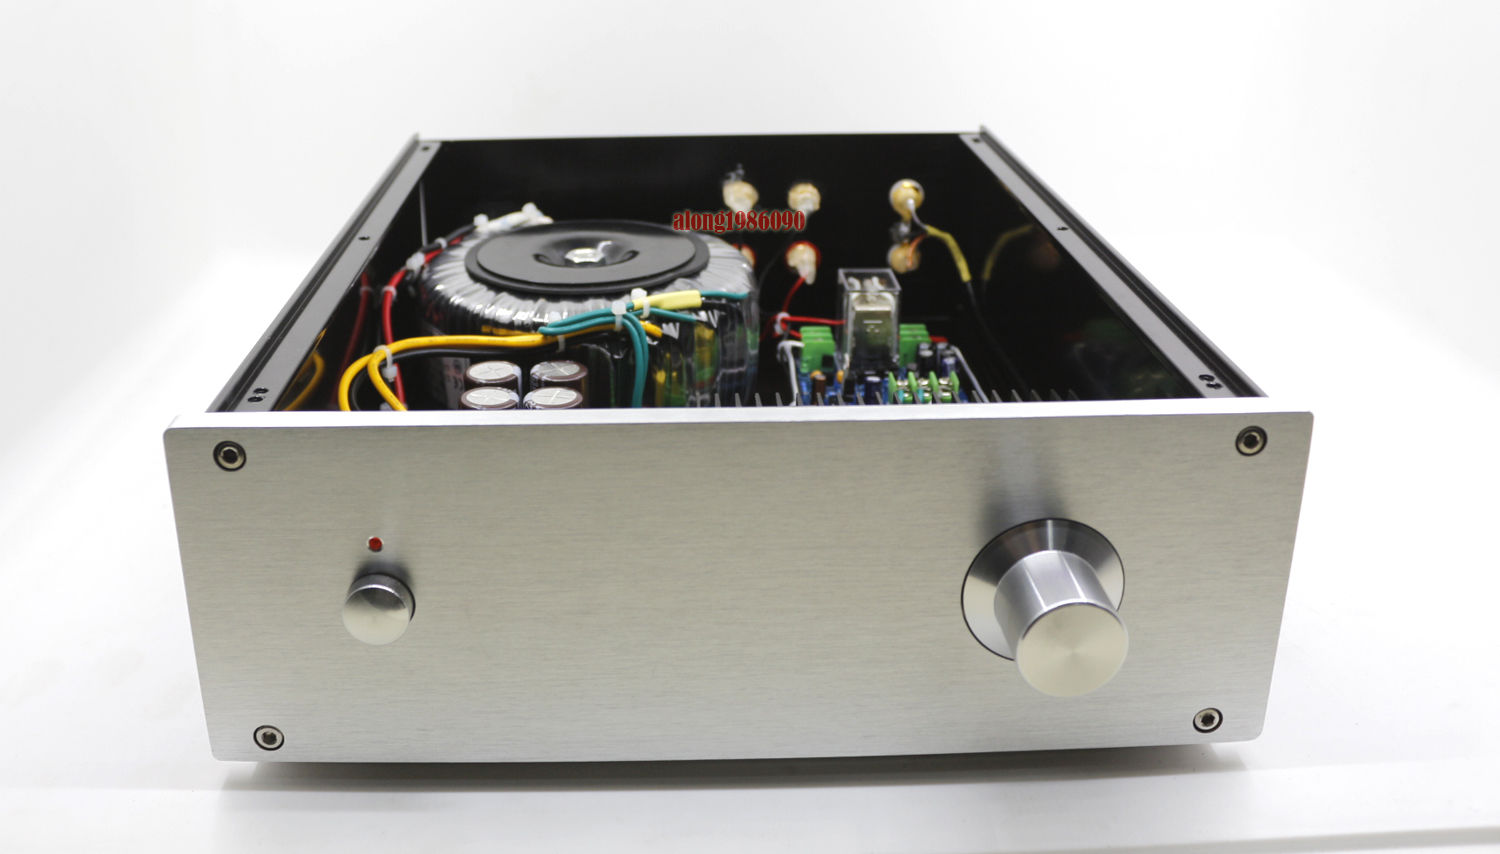 Finished LJM L25D HiFi Audio Stereo Power Amplifier With Speaker Protection AMP adjustable bass treble two divider hifi module game pwm modulation digital amplifier for speaker audio crossover repair parts